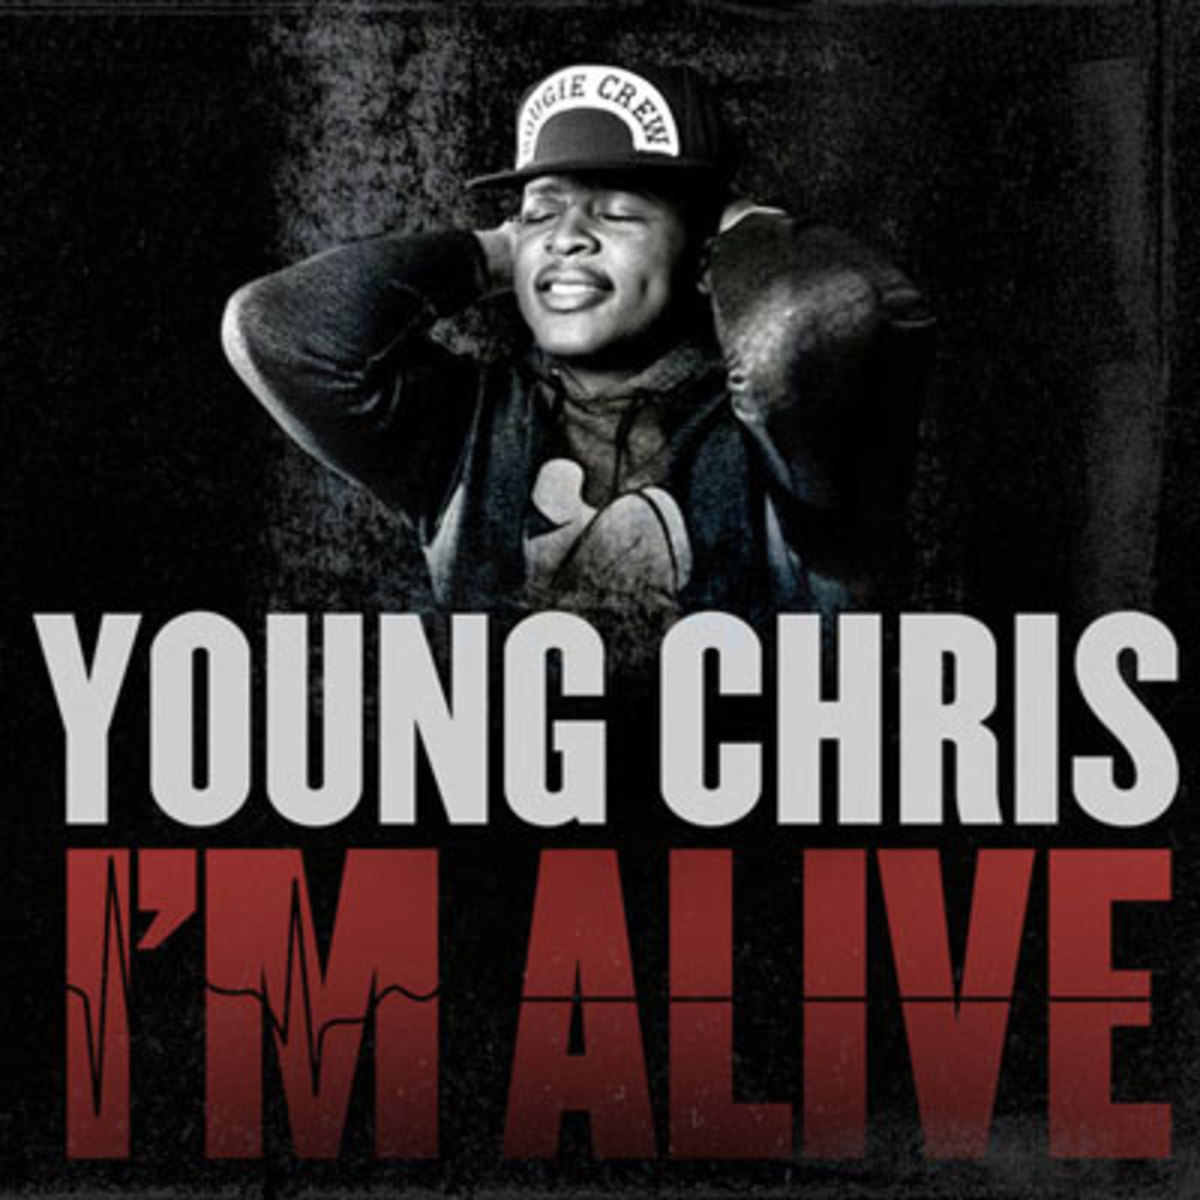 youngchris-imalive.jpg